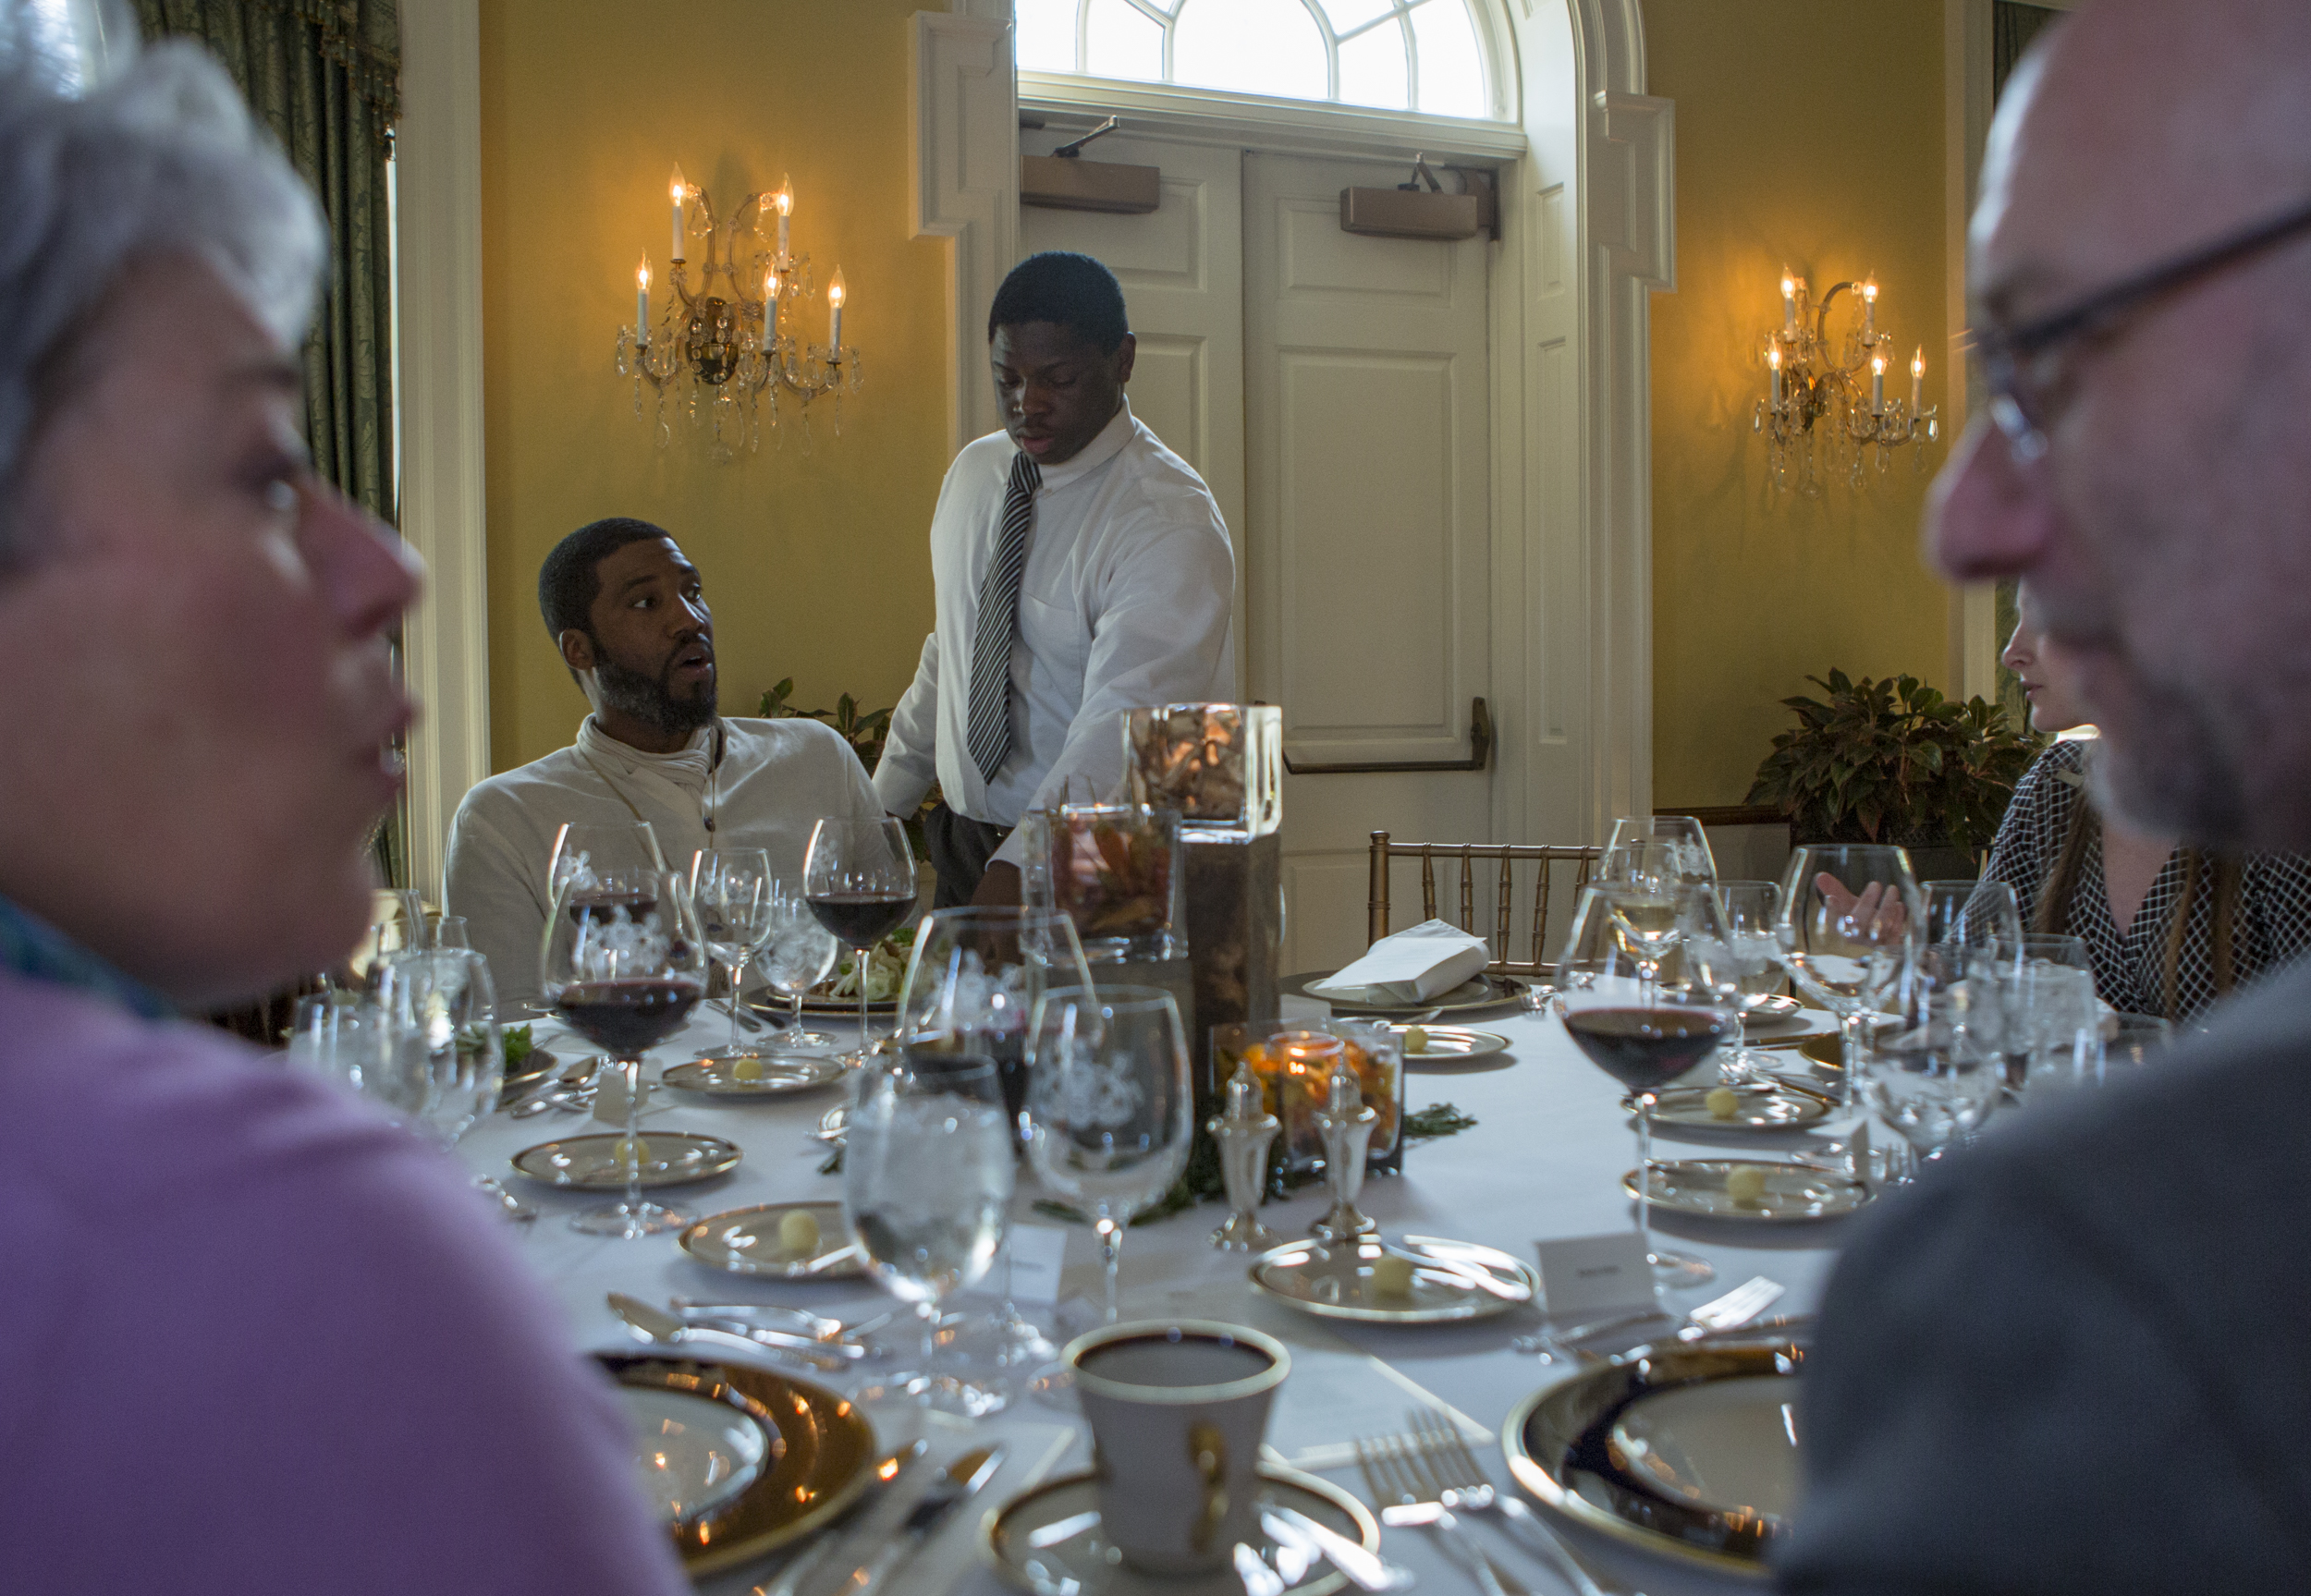 CPI culinary student Eli Lipscomb serves a salad to Penn State graduate student Eric Farmer as part of the dinner hosed by CPI students and staff at the Governor's Residence in Harrisburg on Monday, April 11, 2016.